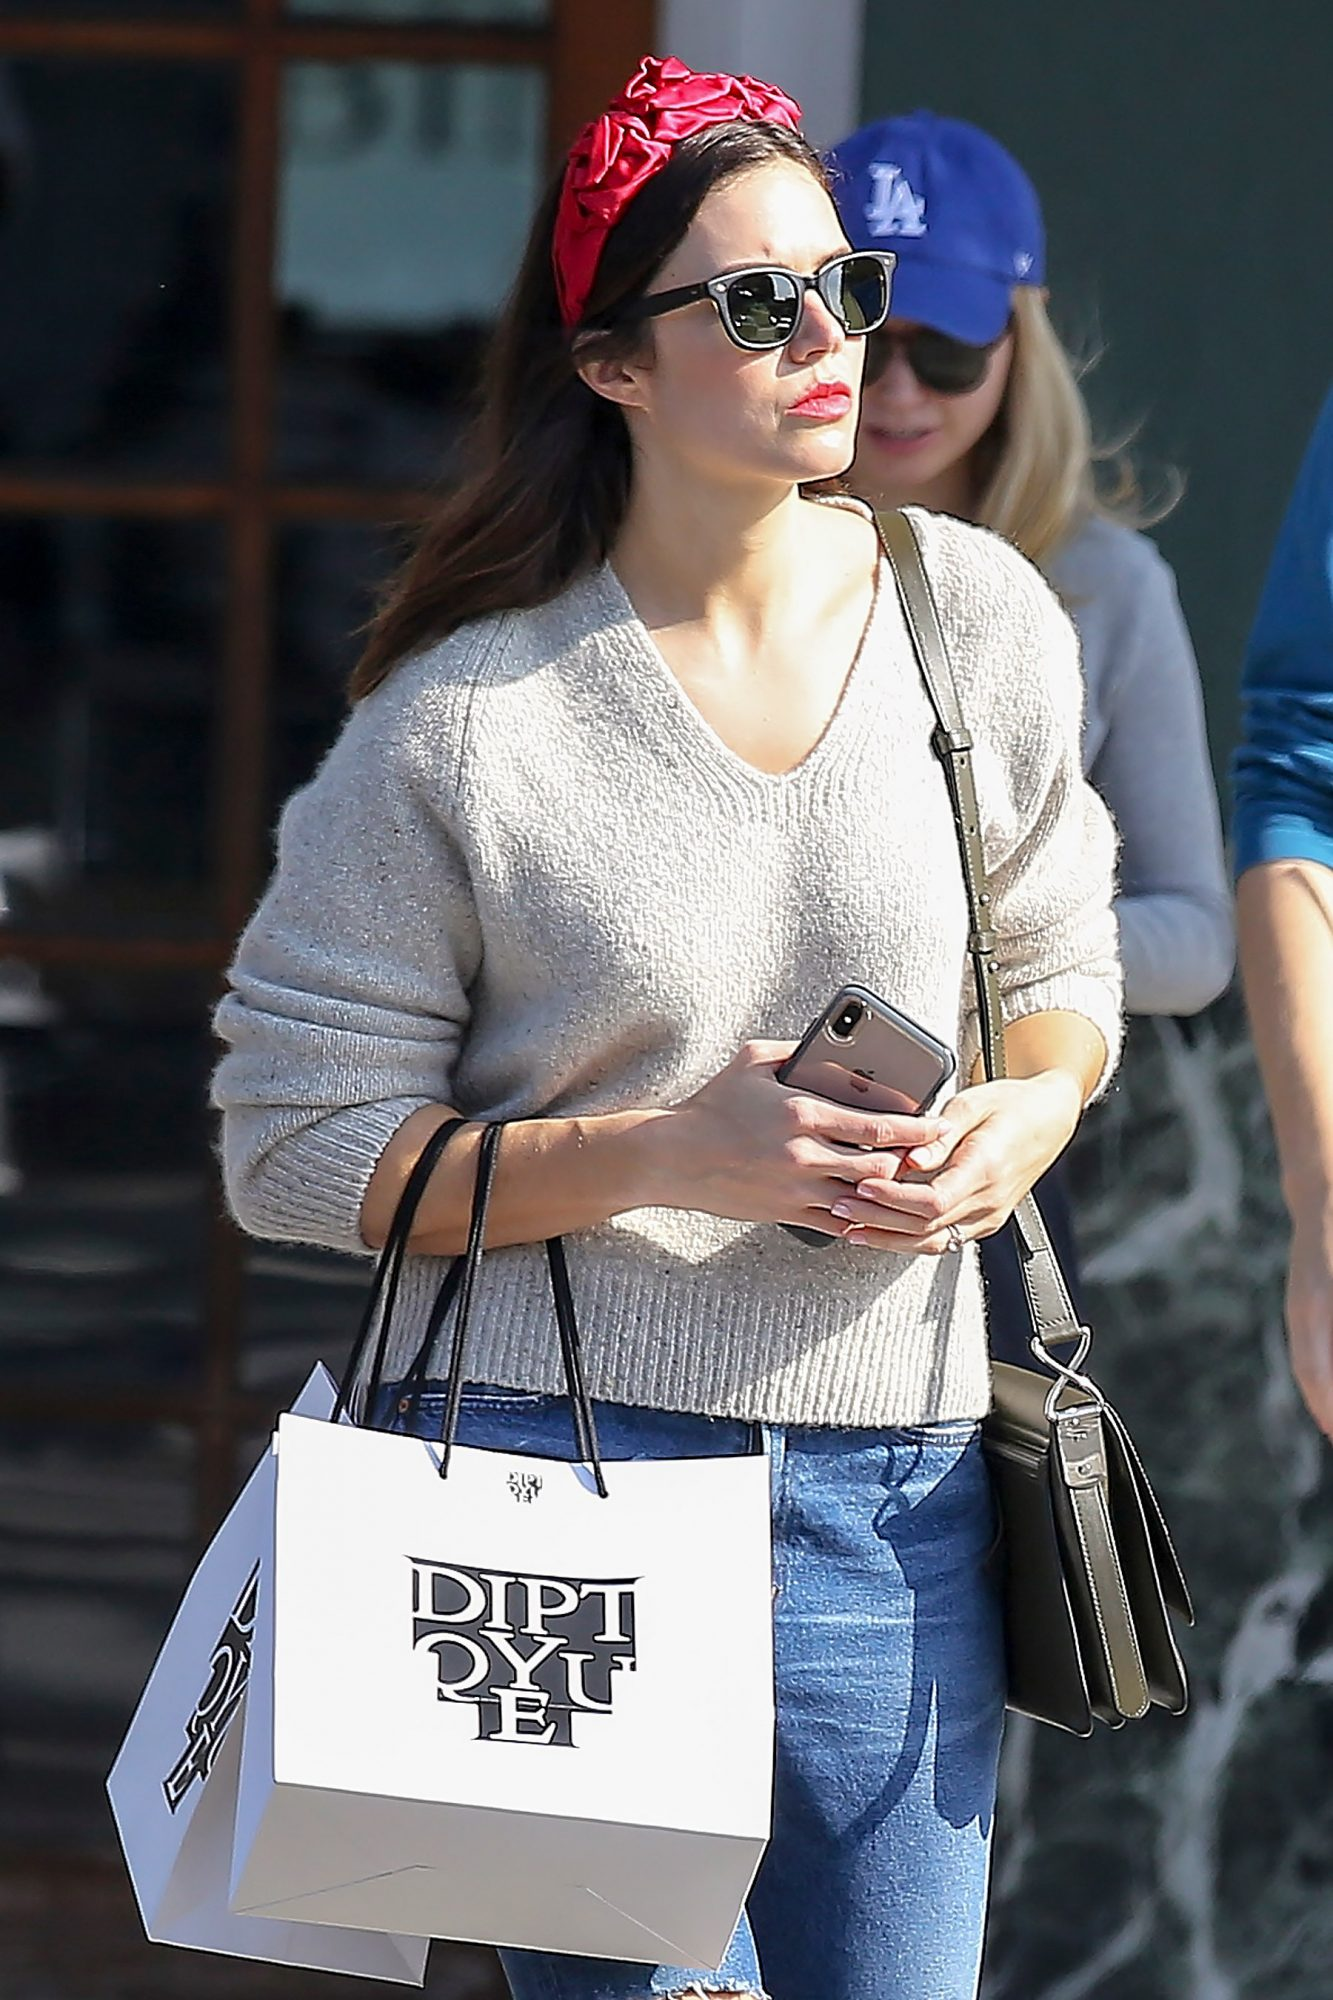 EXCLUSIVE: Newly married Mandy Moore flashes her wedding ring whilst shopping